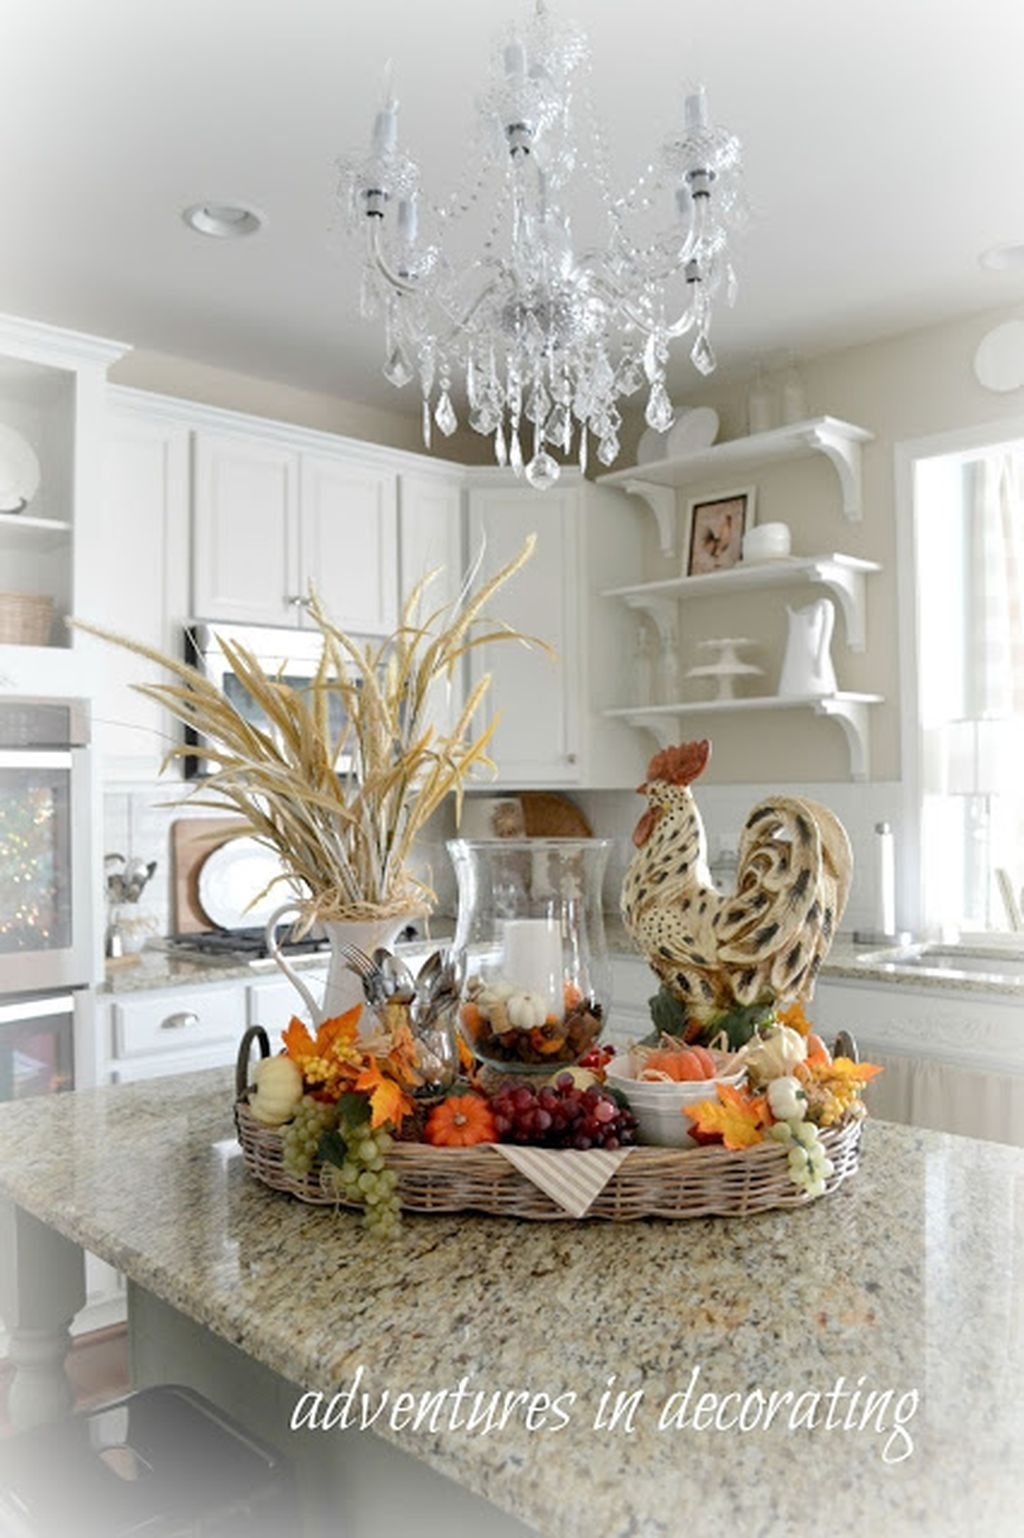 Cool totally adorable fall country decoration ideas for your home also rh pinterest